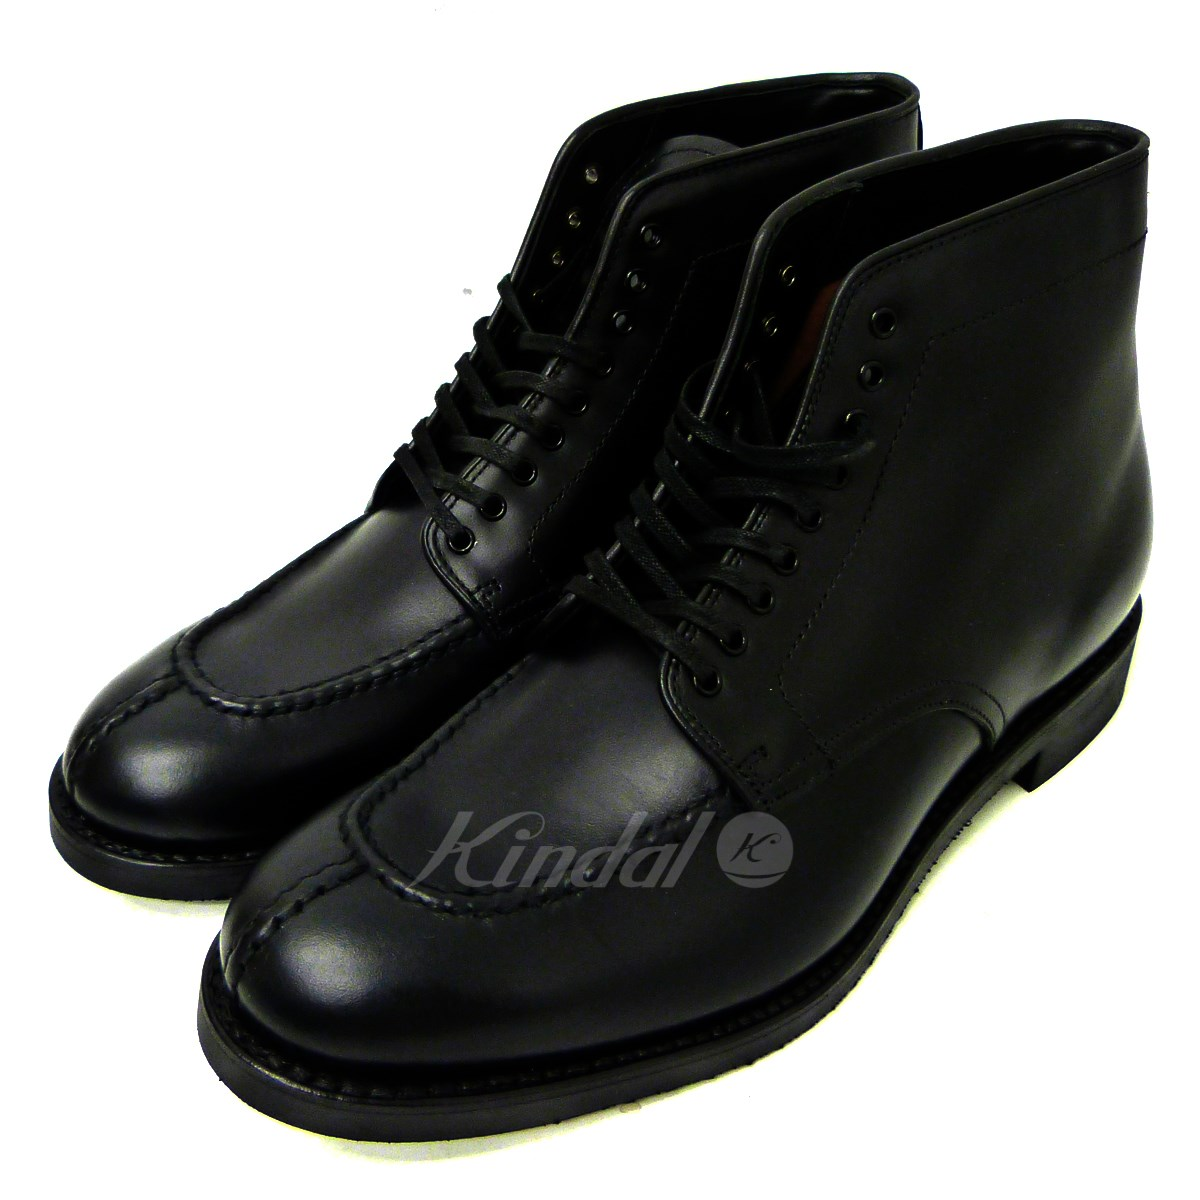 【中古】NEIGHBOR HOOD 16AW「M 41 W.B SMOOTH/CL-SHOES」レースアップブーツ 【送料無料】 【151922】 【KIND1551】